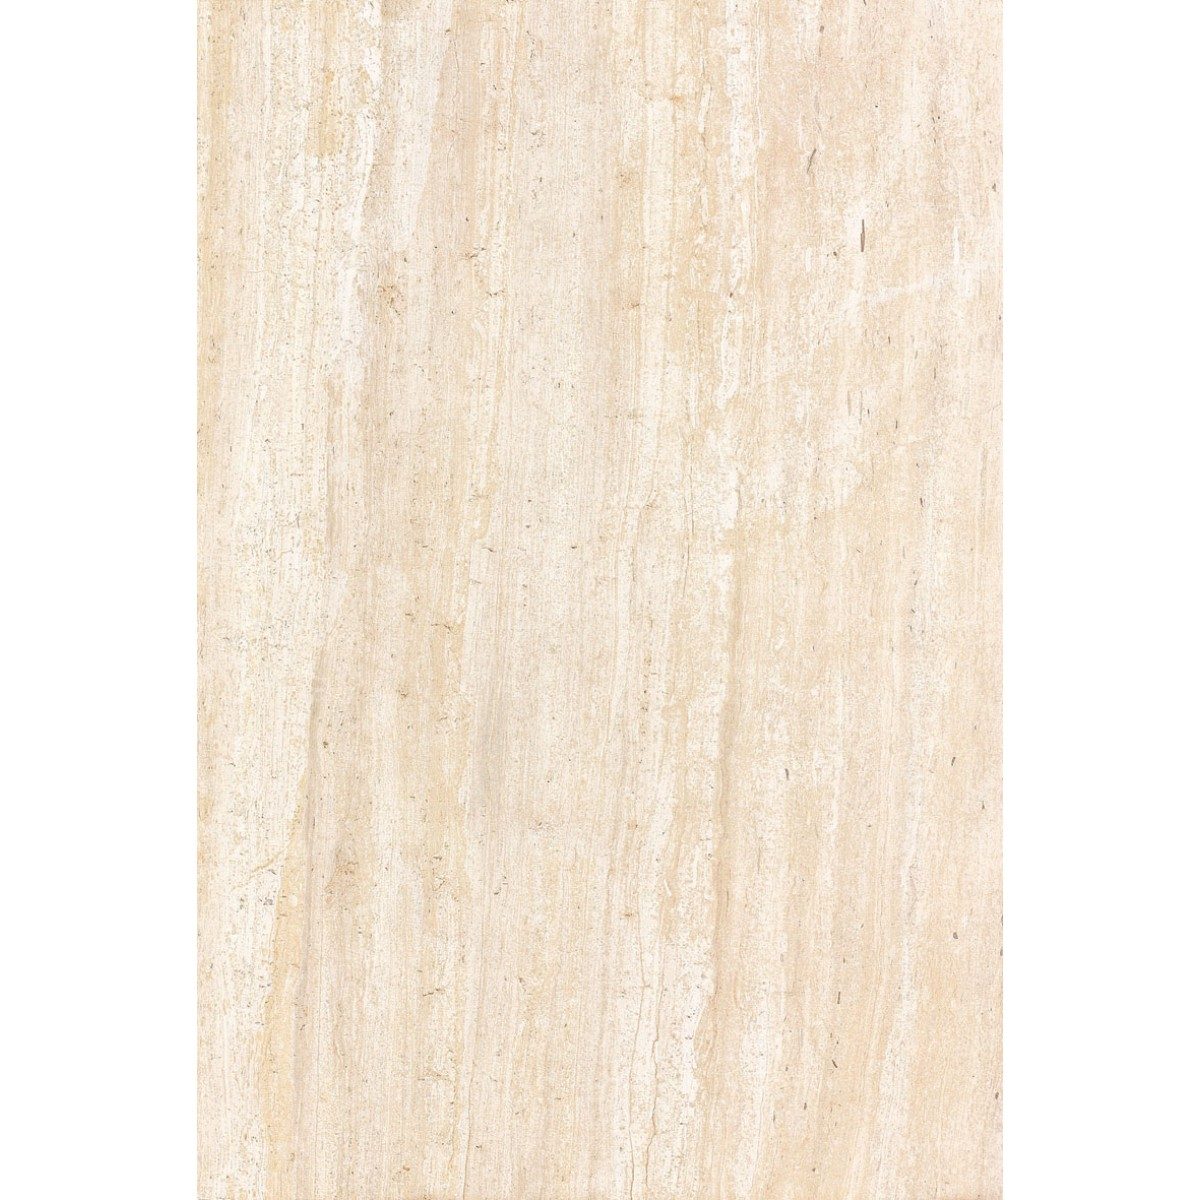 Light Gingko Beige 60x90x1,2cm